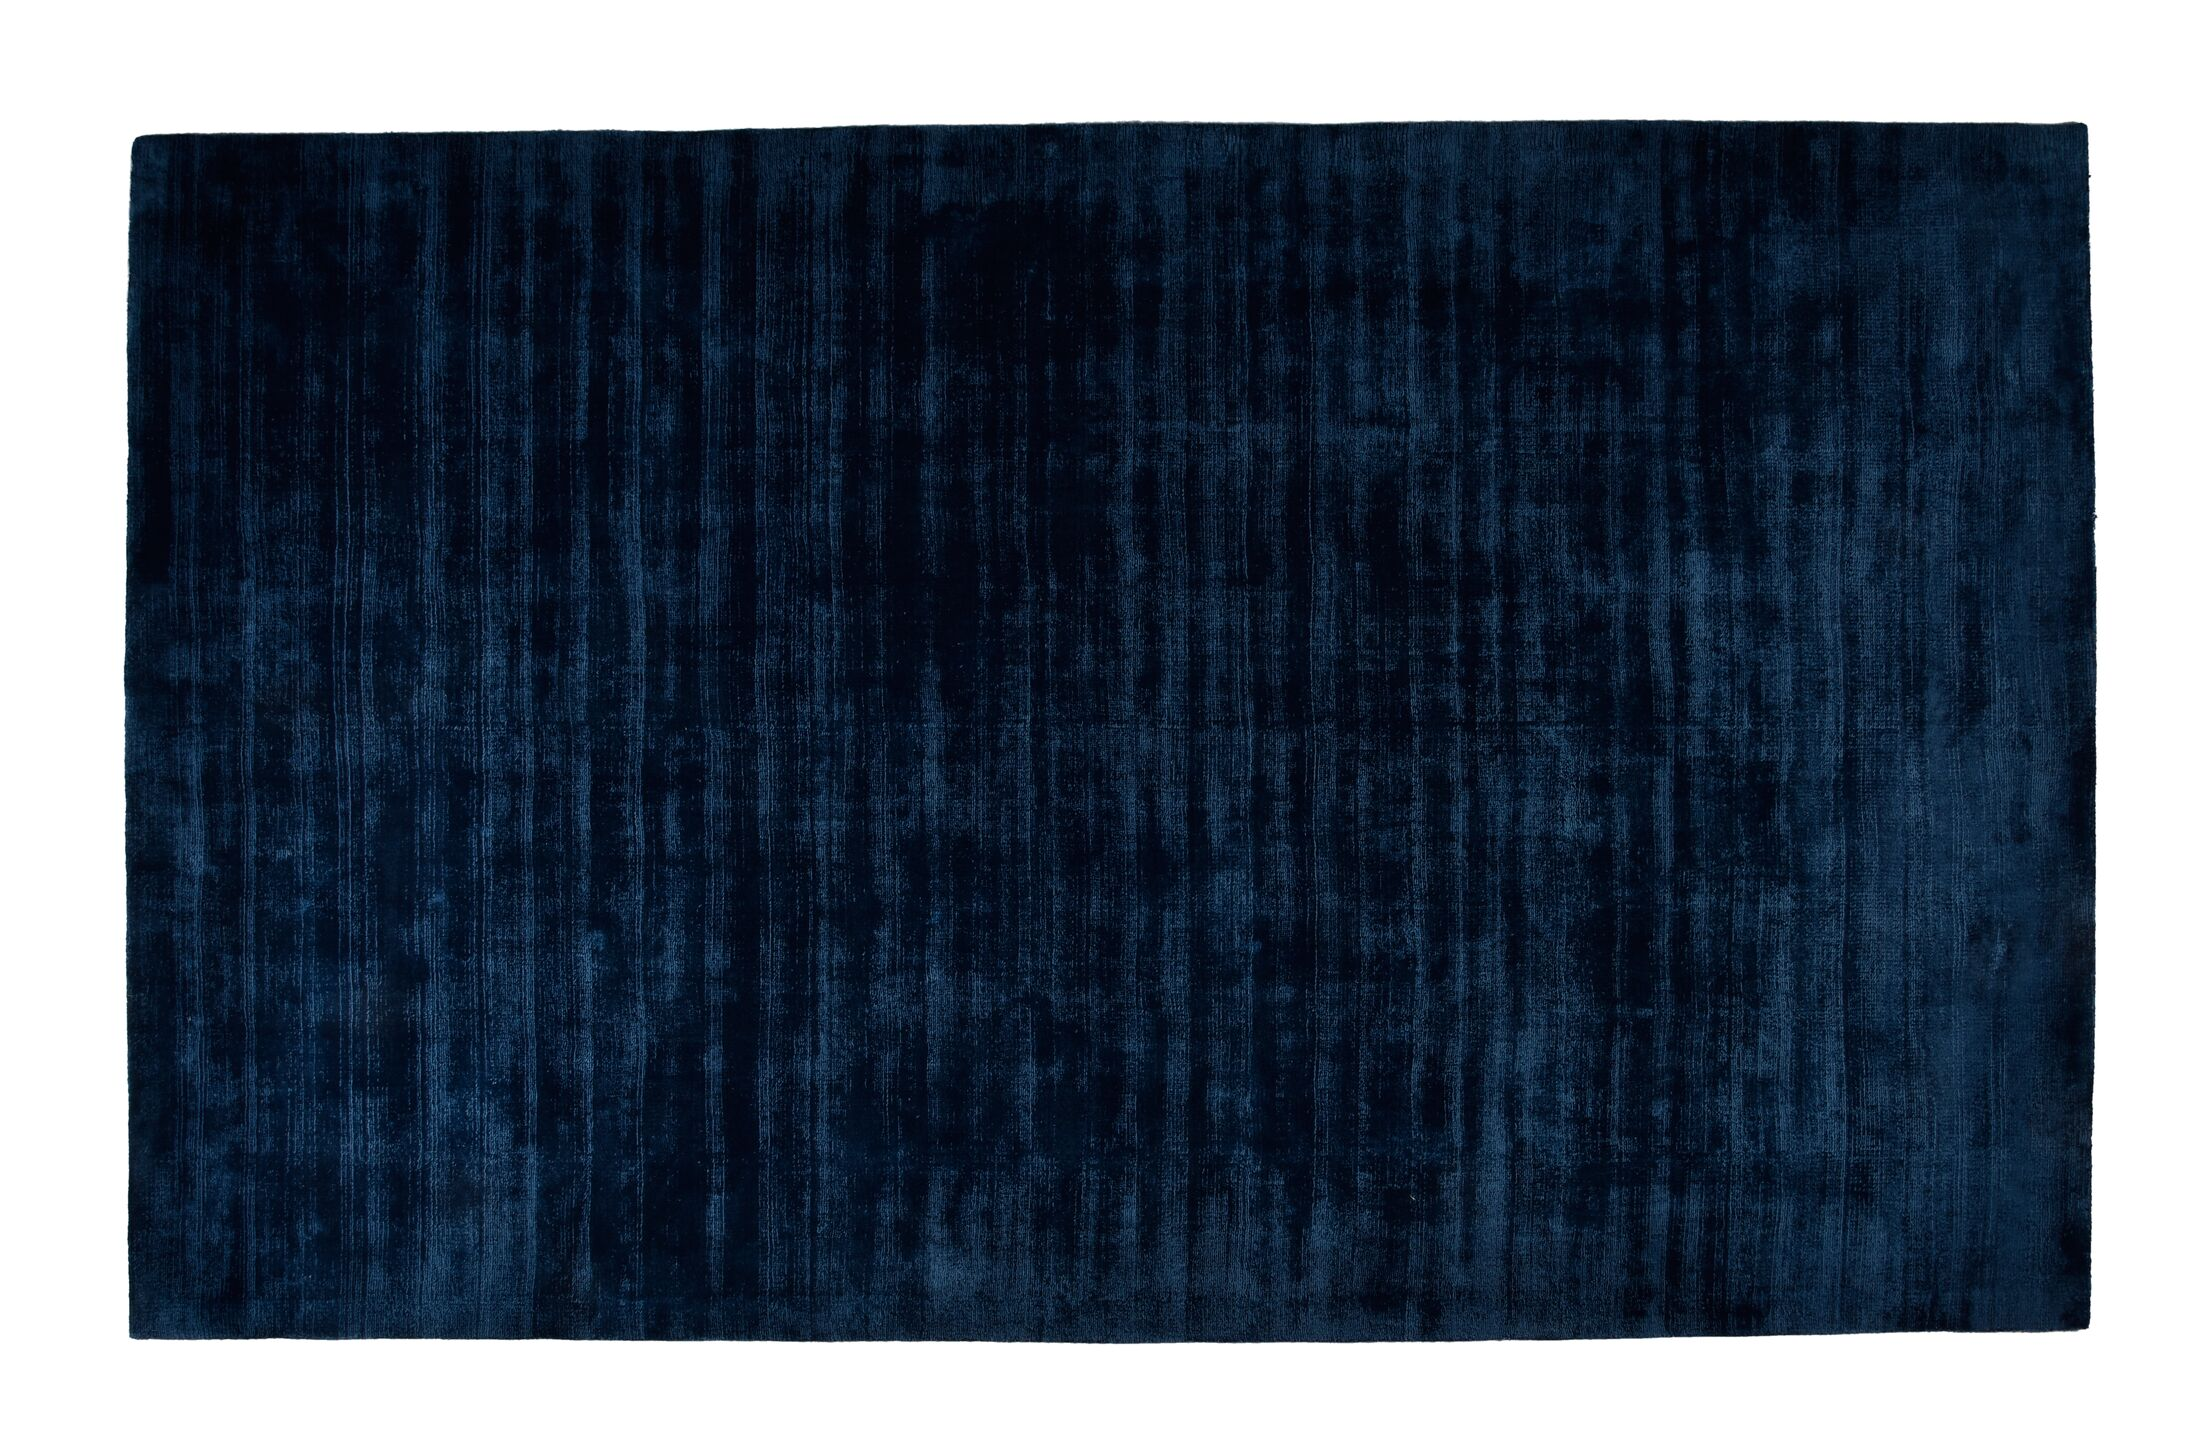 Pressley Hand-Woven Wool Teal Area Rug Rug Size: Rectangle 8'x 10'